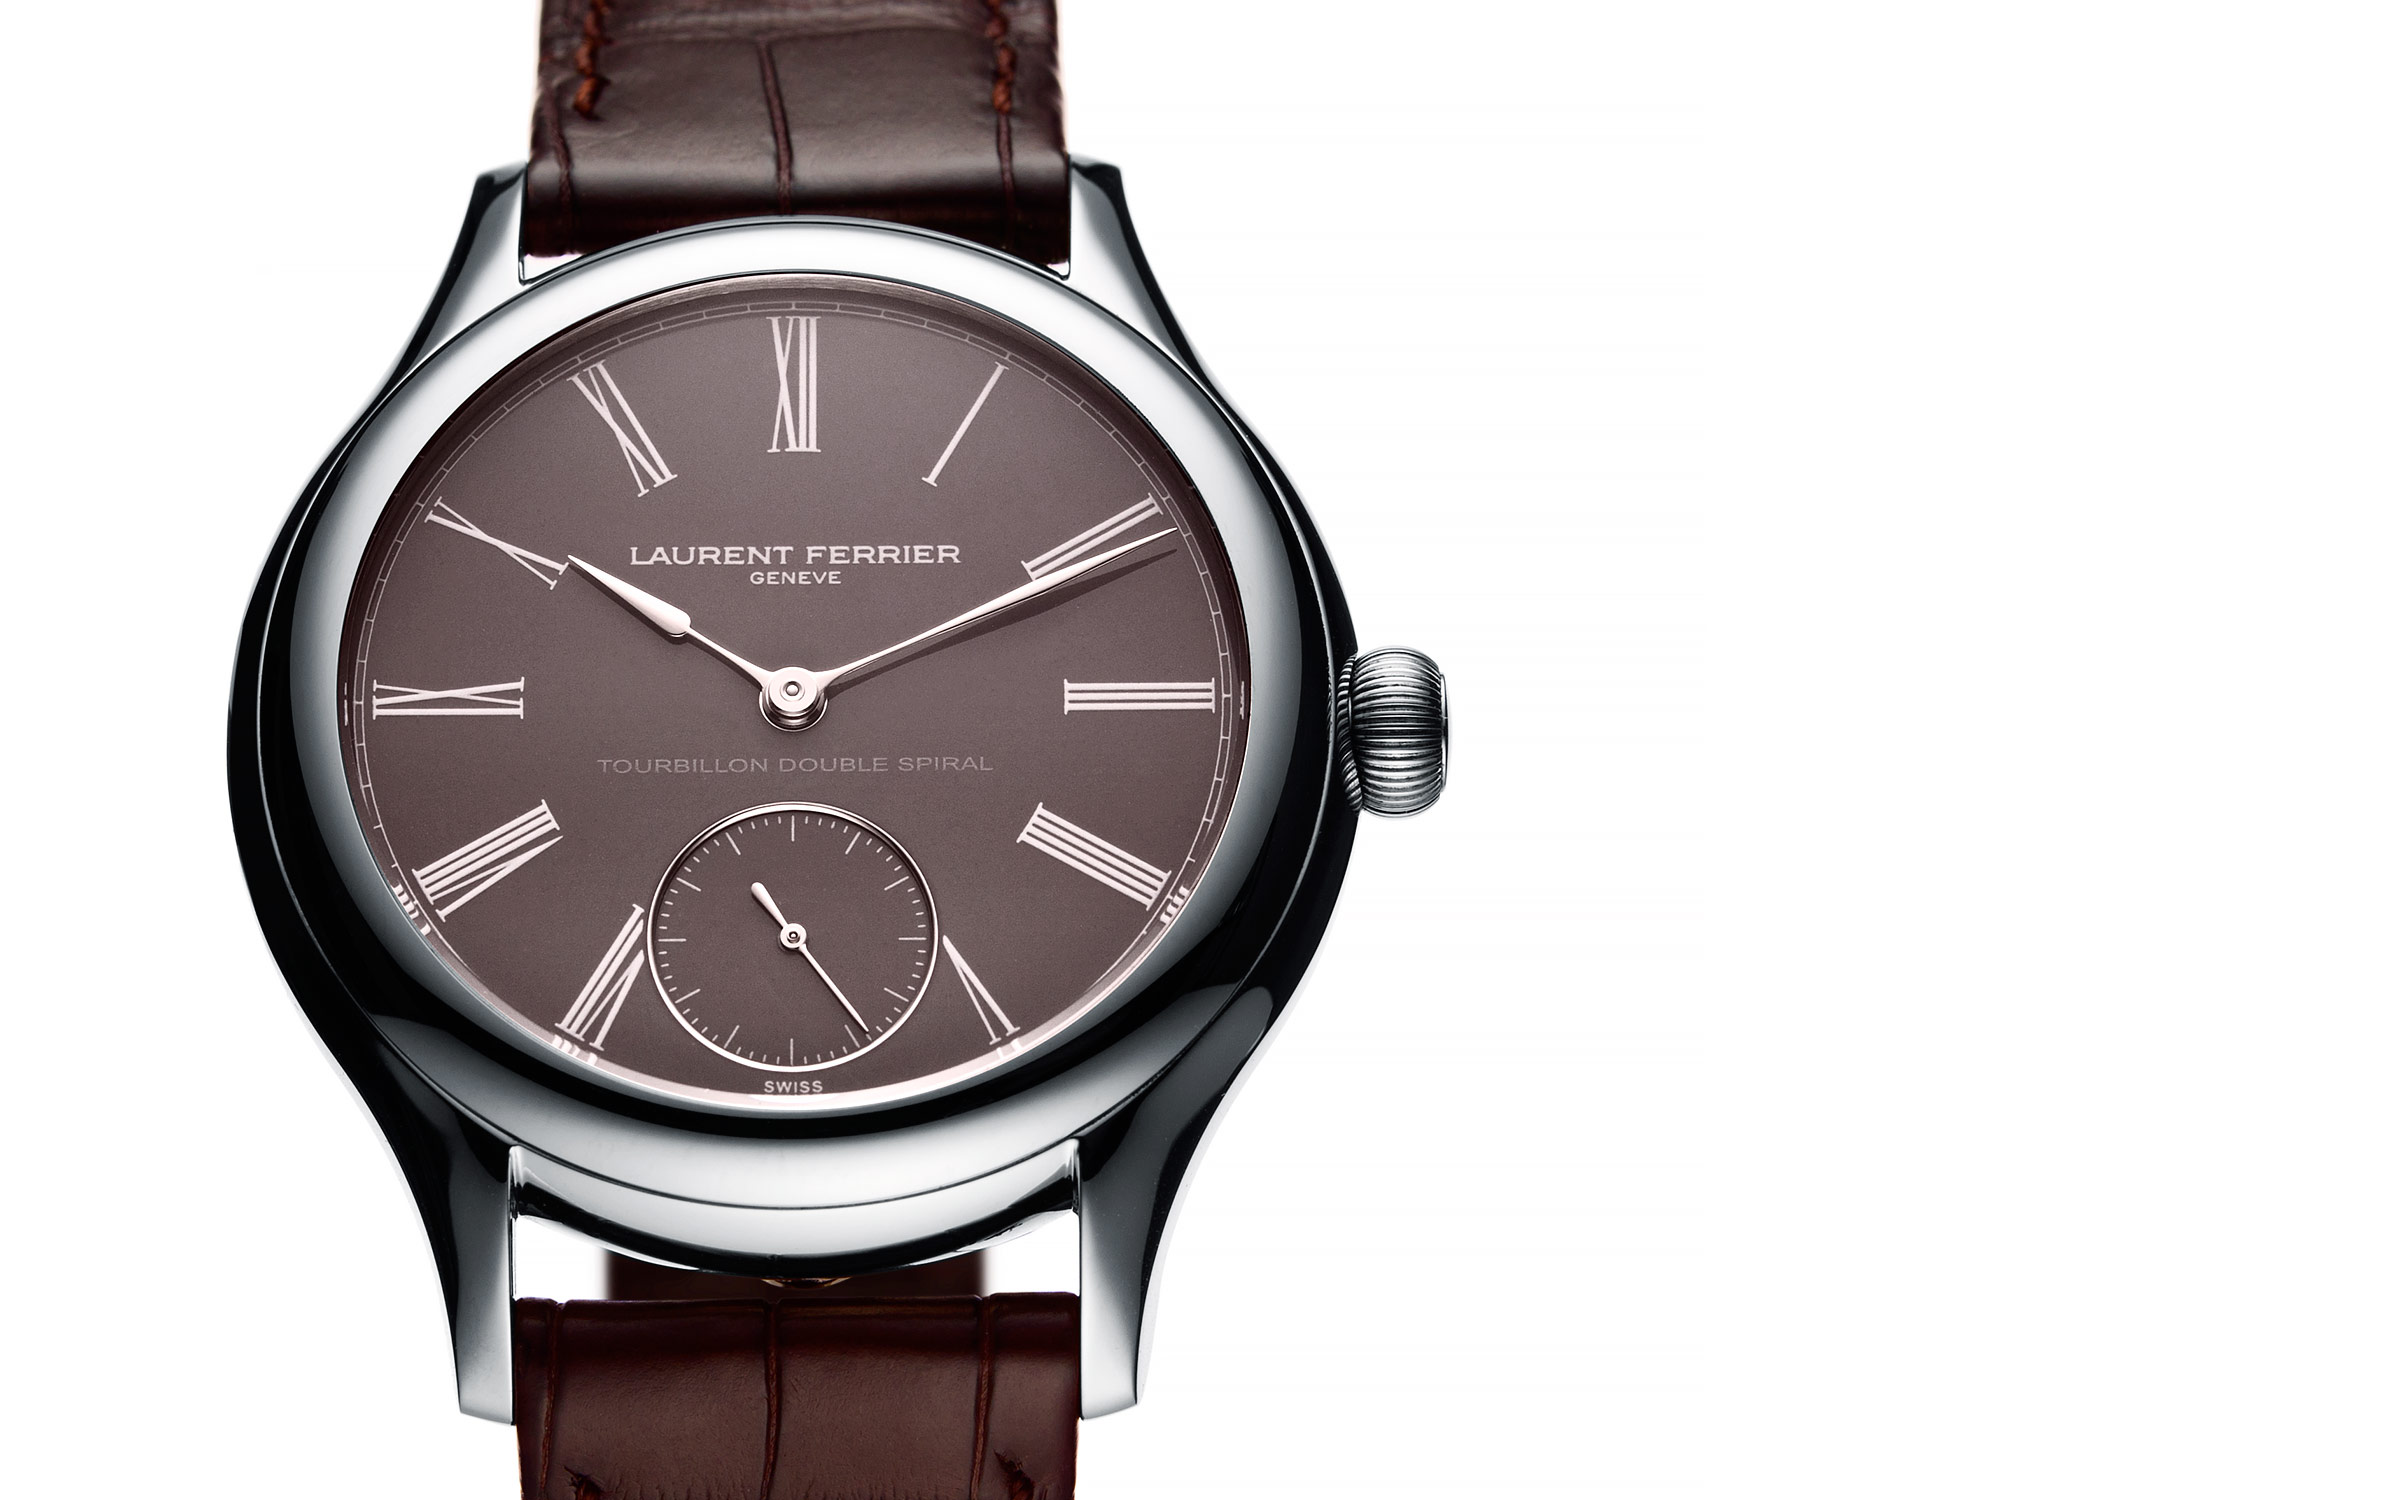 Still life photography of watches for Laurent Ferrier